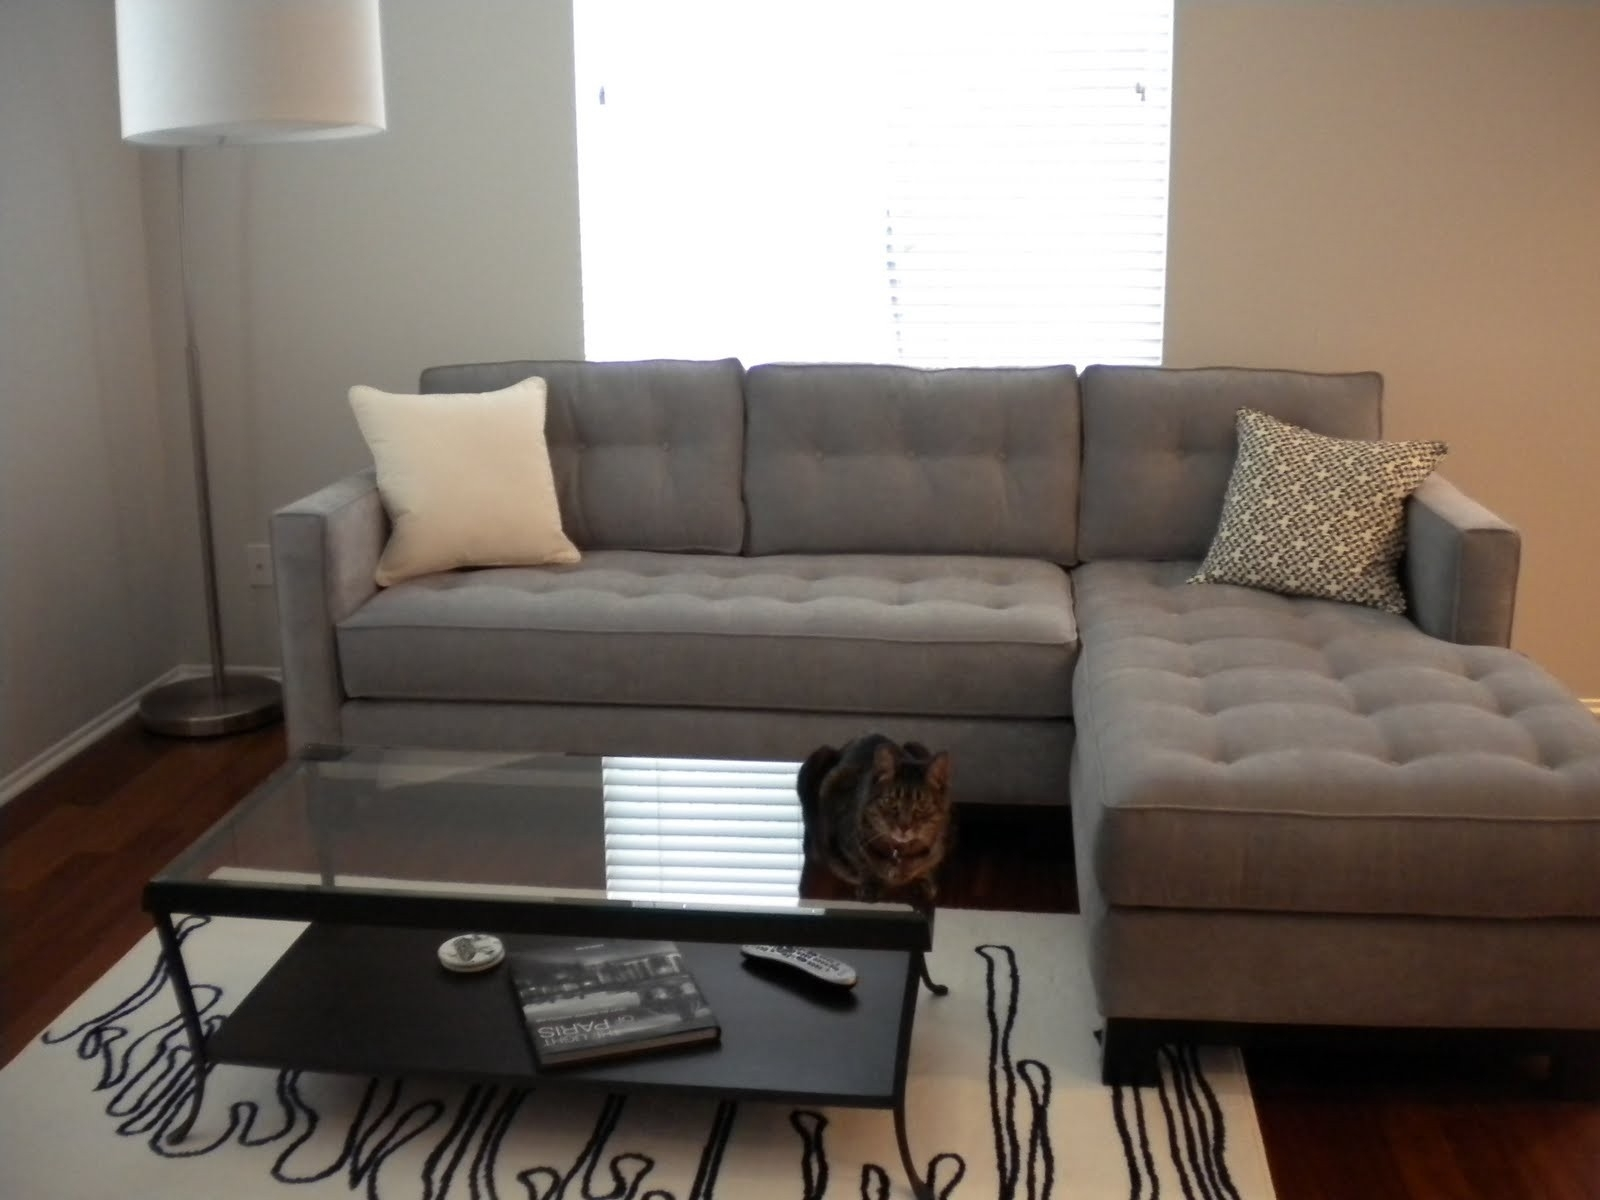 San Francisco Sectional Sofas For Well Known Sectional Sofas San Francisco – Fjellkjeden (View 2 of 20)